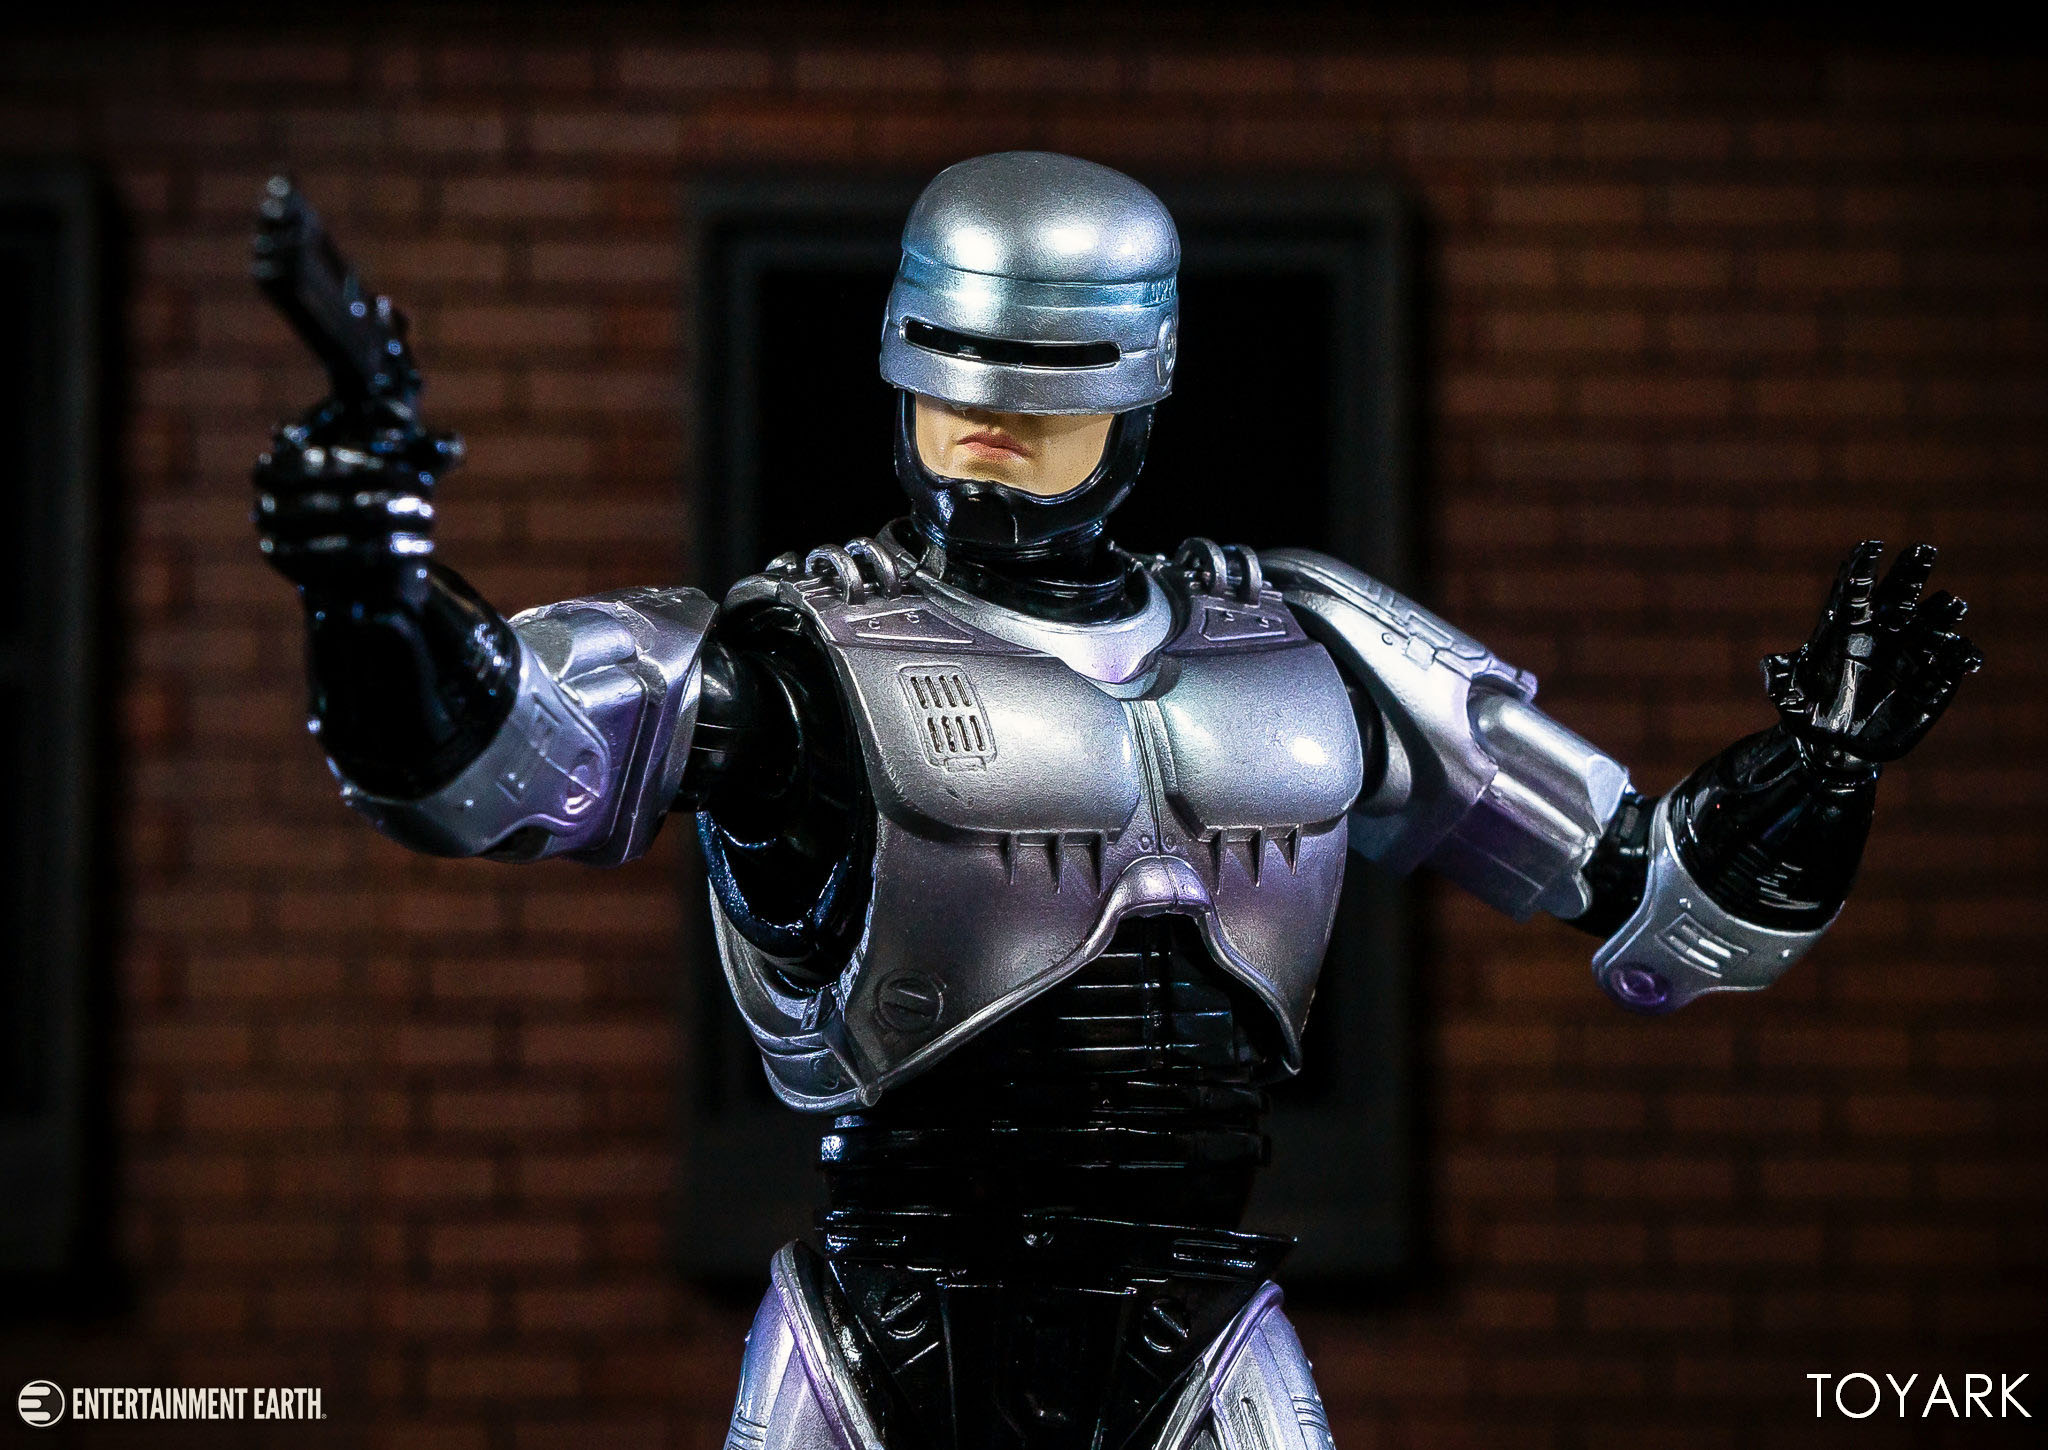 https://news.toyark.com/wp-content/uploads/sites/4/2019/03/MAFEX-Robocop-Gallery-005.jpg